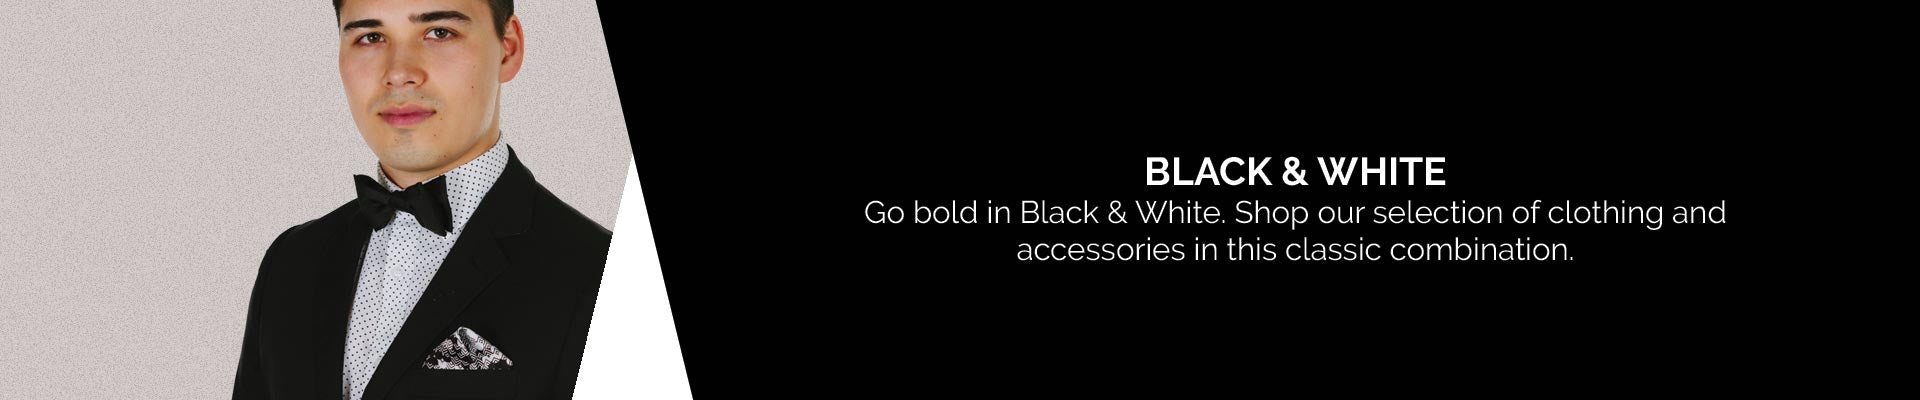 Shop the James Harper Collections of Men's Clothing and  Accessories in Black and White